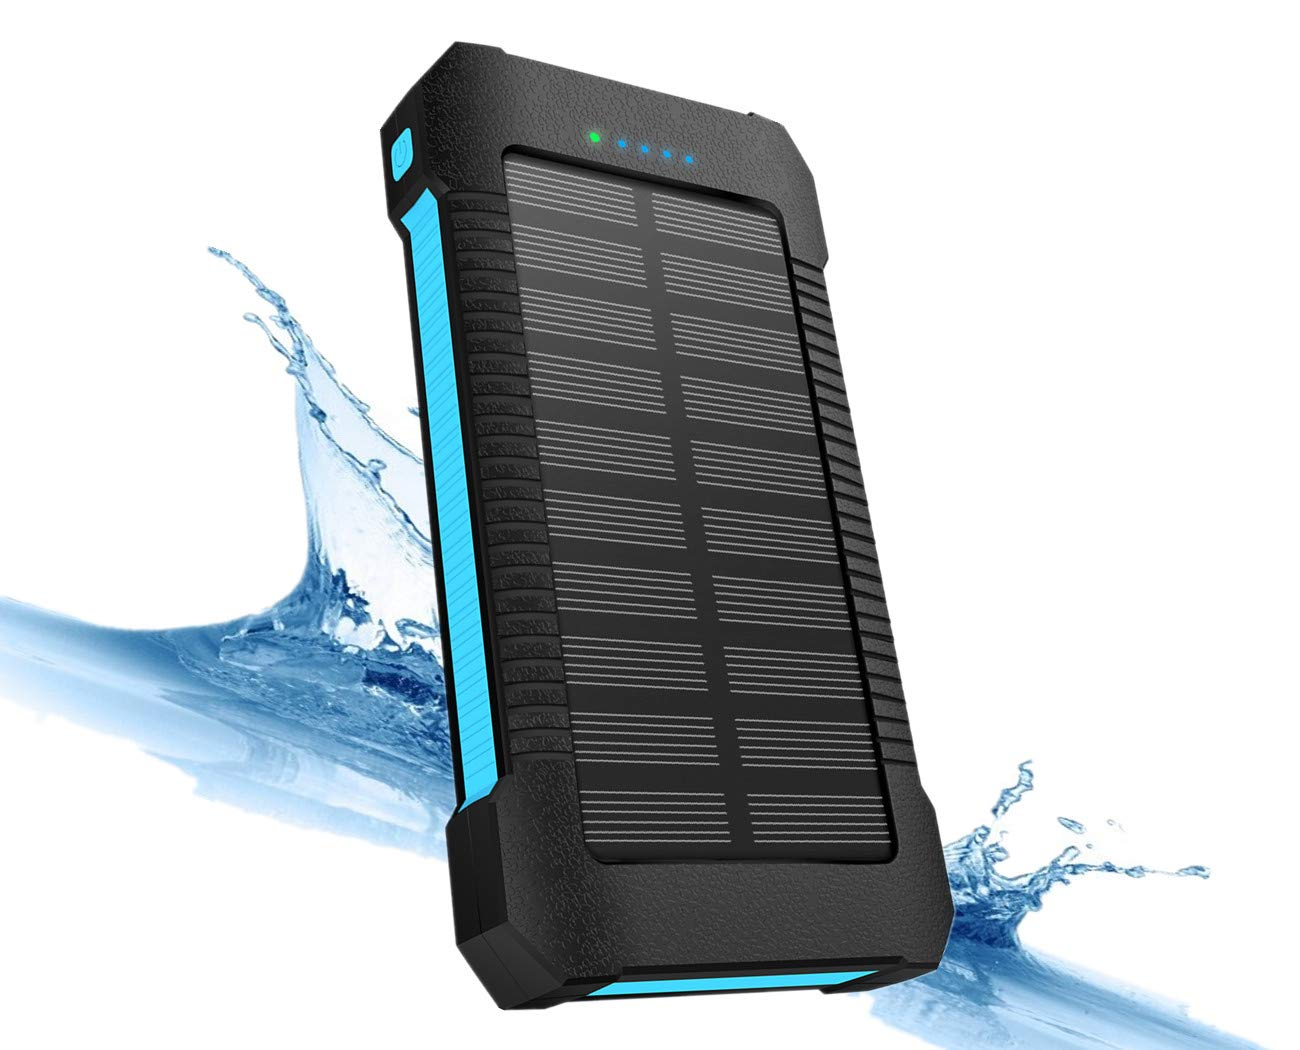 Solar Power Bank Charger 22000 mAh, Solar Powered Phone Charger Portable, Solar Panel Battery Charger with Type-C, Dual USB, LED Flashlight, IPx7 Waterproof, Dustproof and Shockproof, for Mobile Phone, iPhone, iPad, Samsung Galaxy, Cellphon